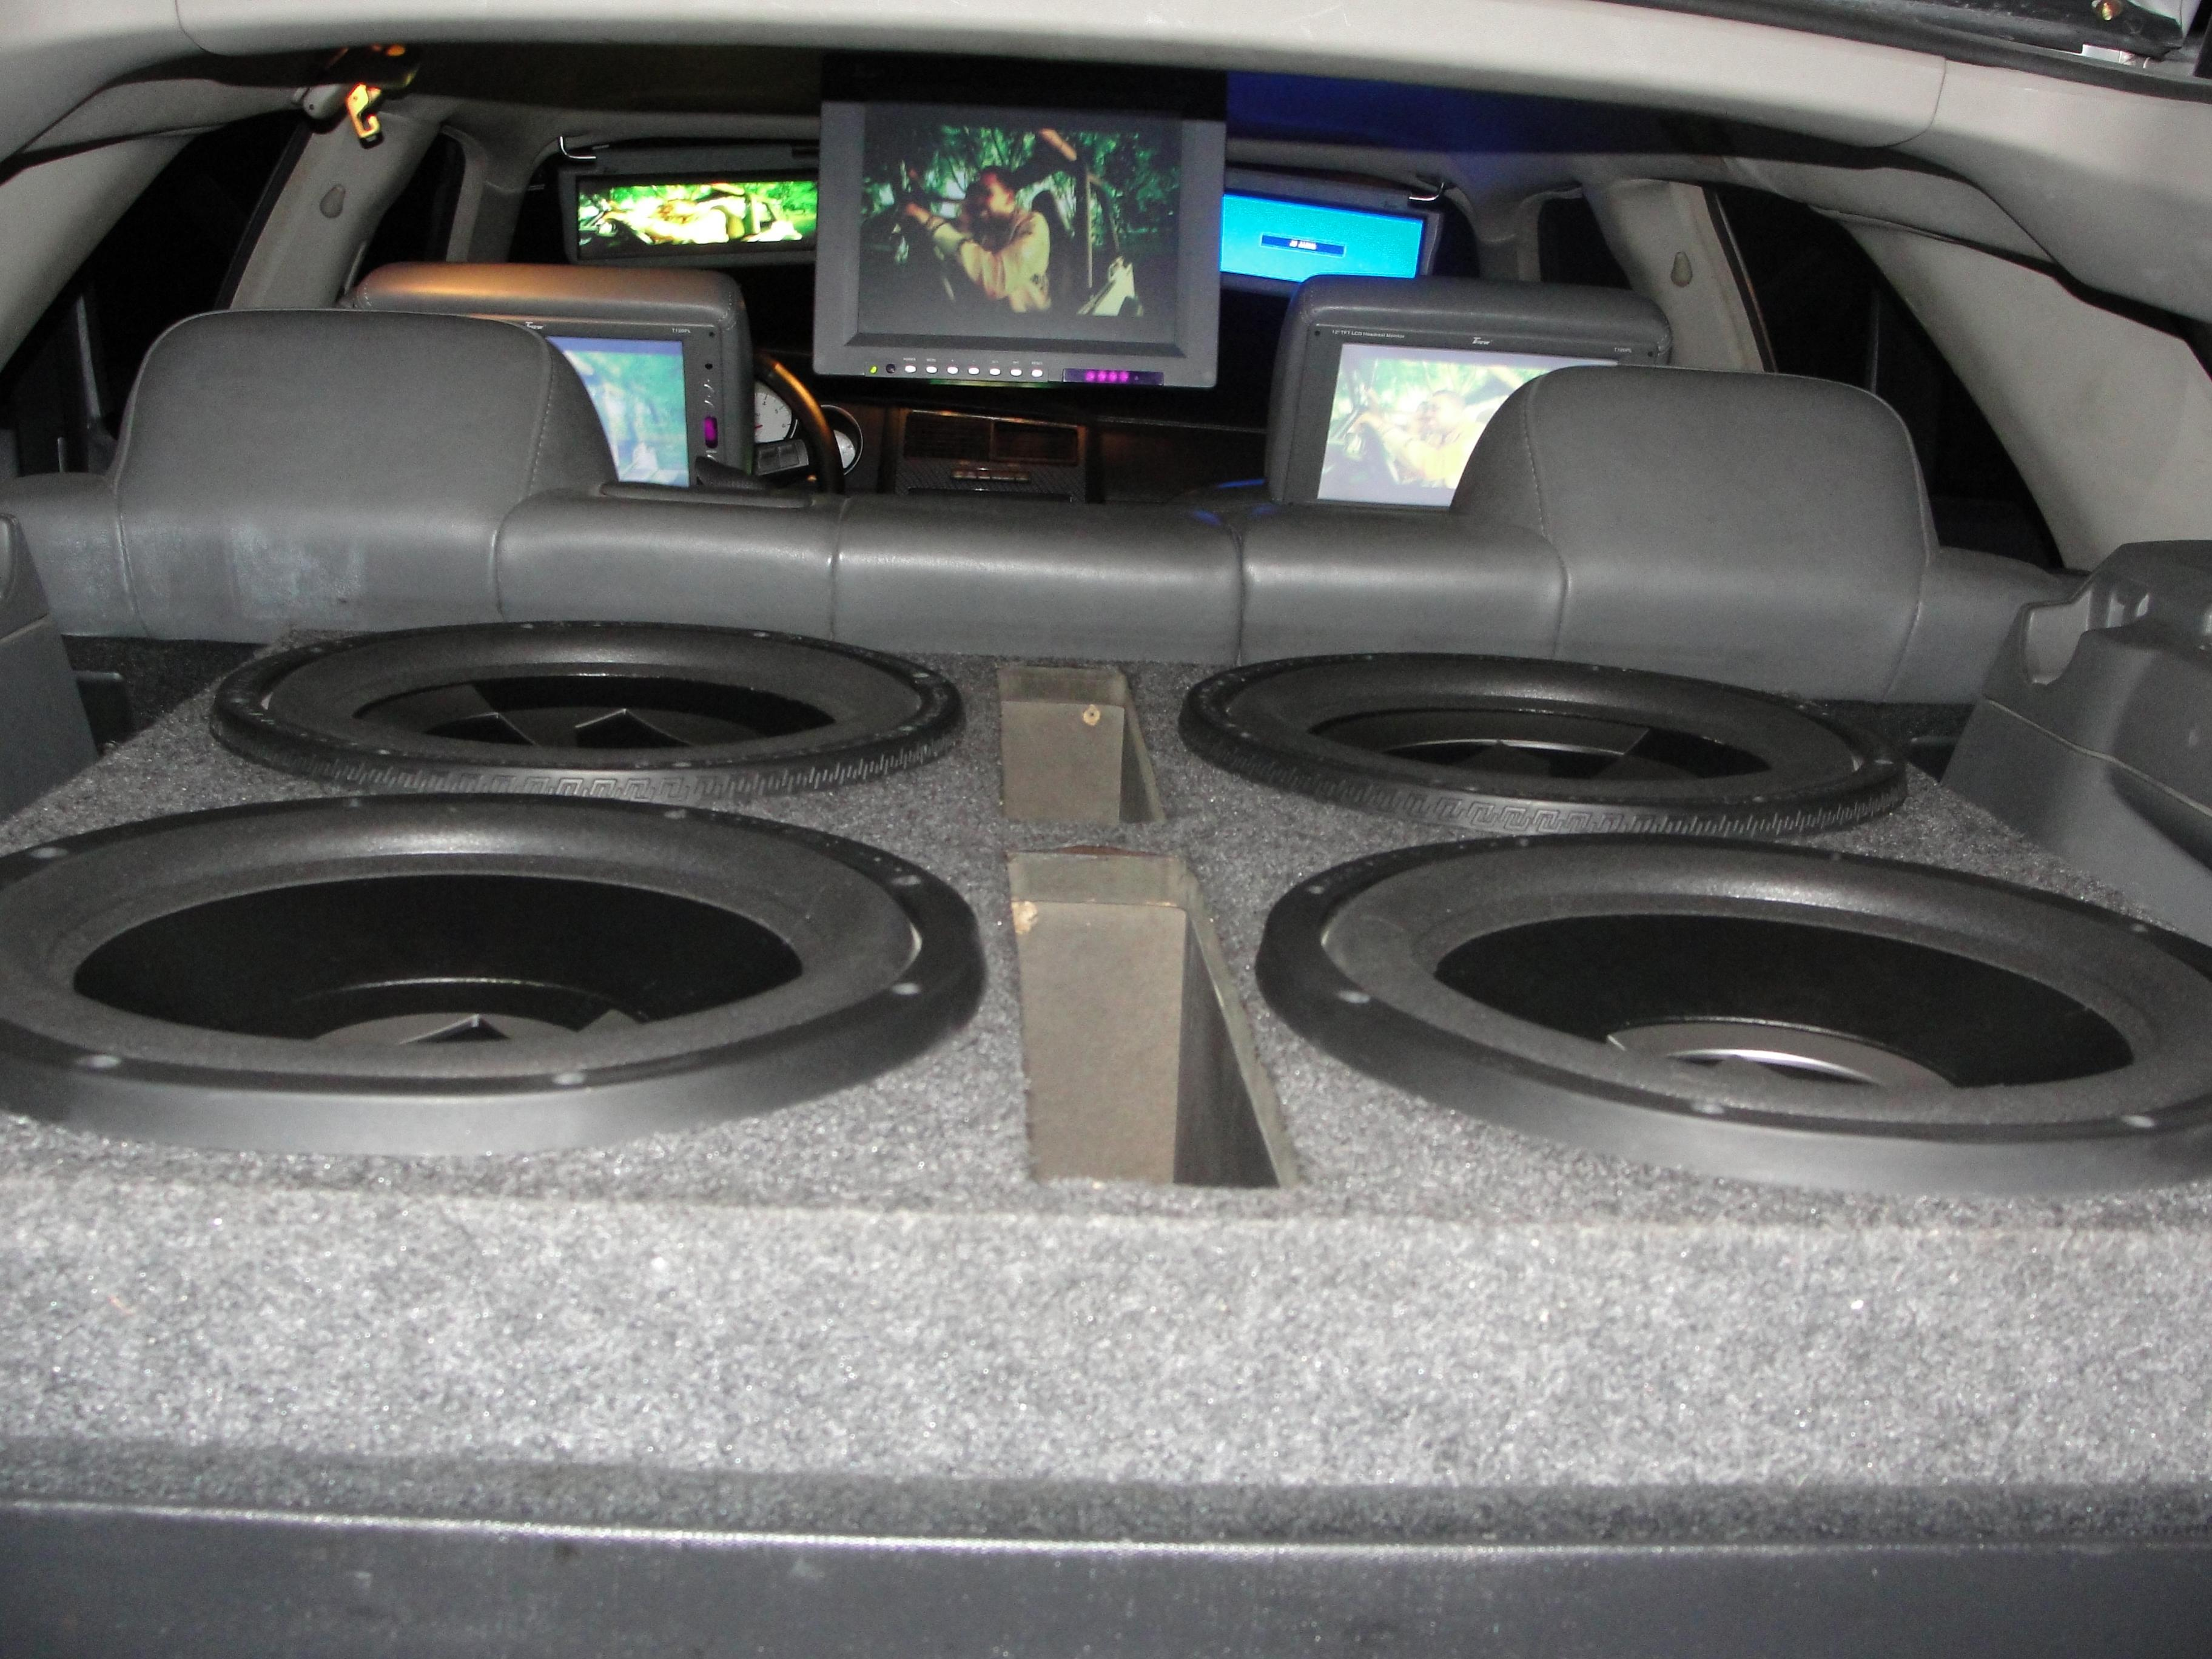 4 12 memphis audio subwoofer enclosure for 2005 dodge magnum rt thecheapjerseys Images